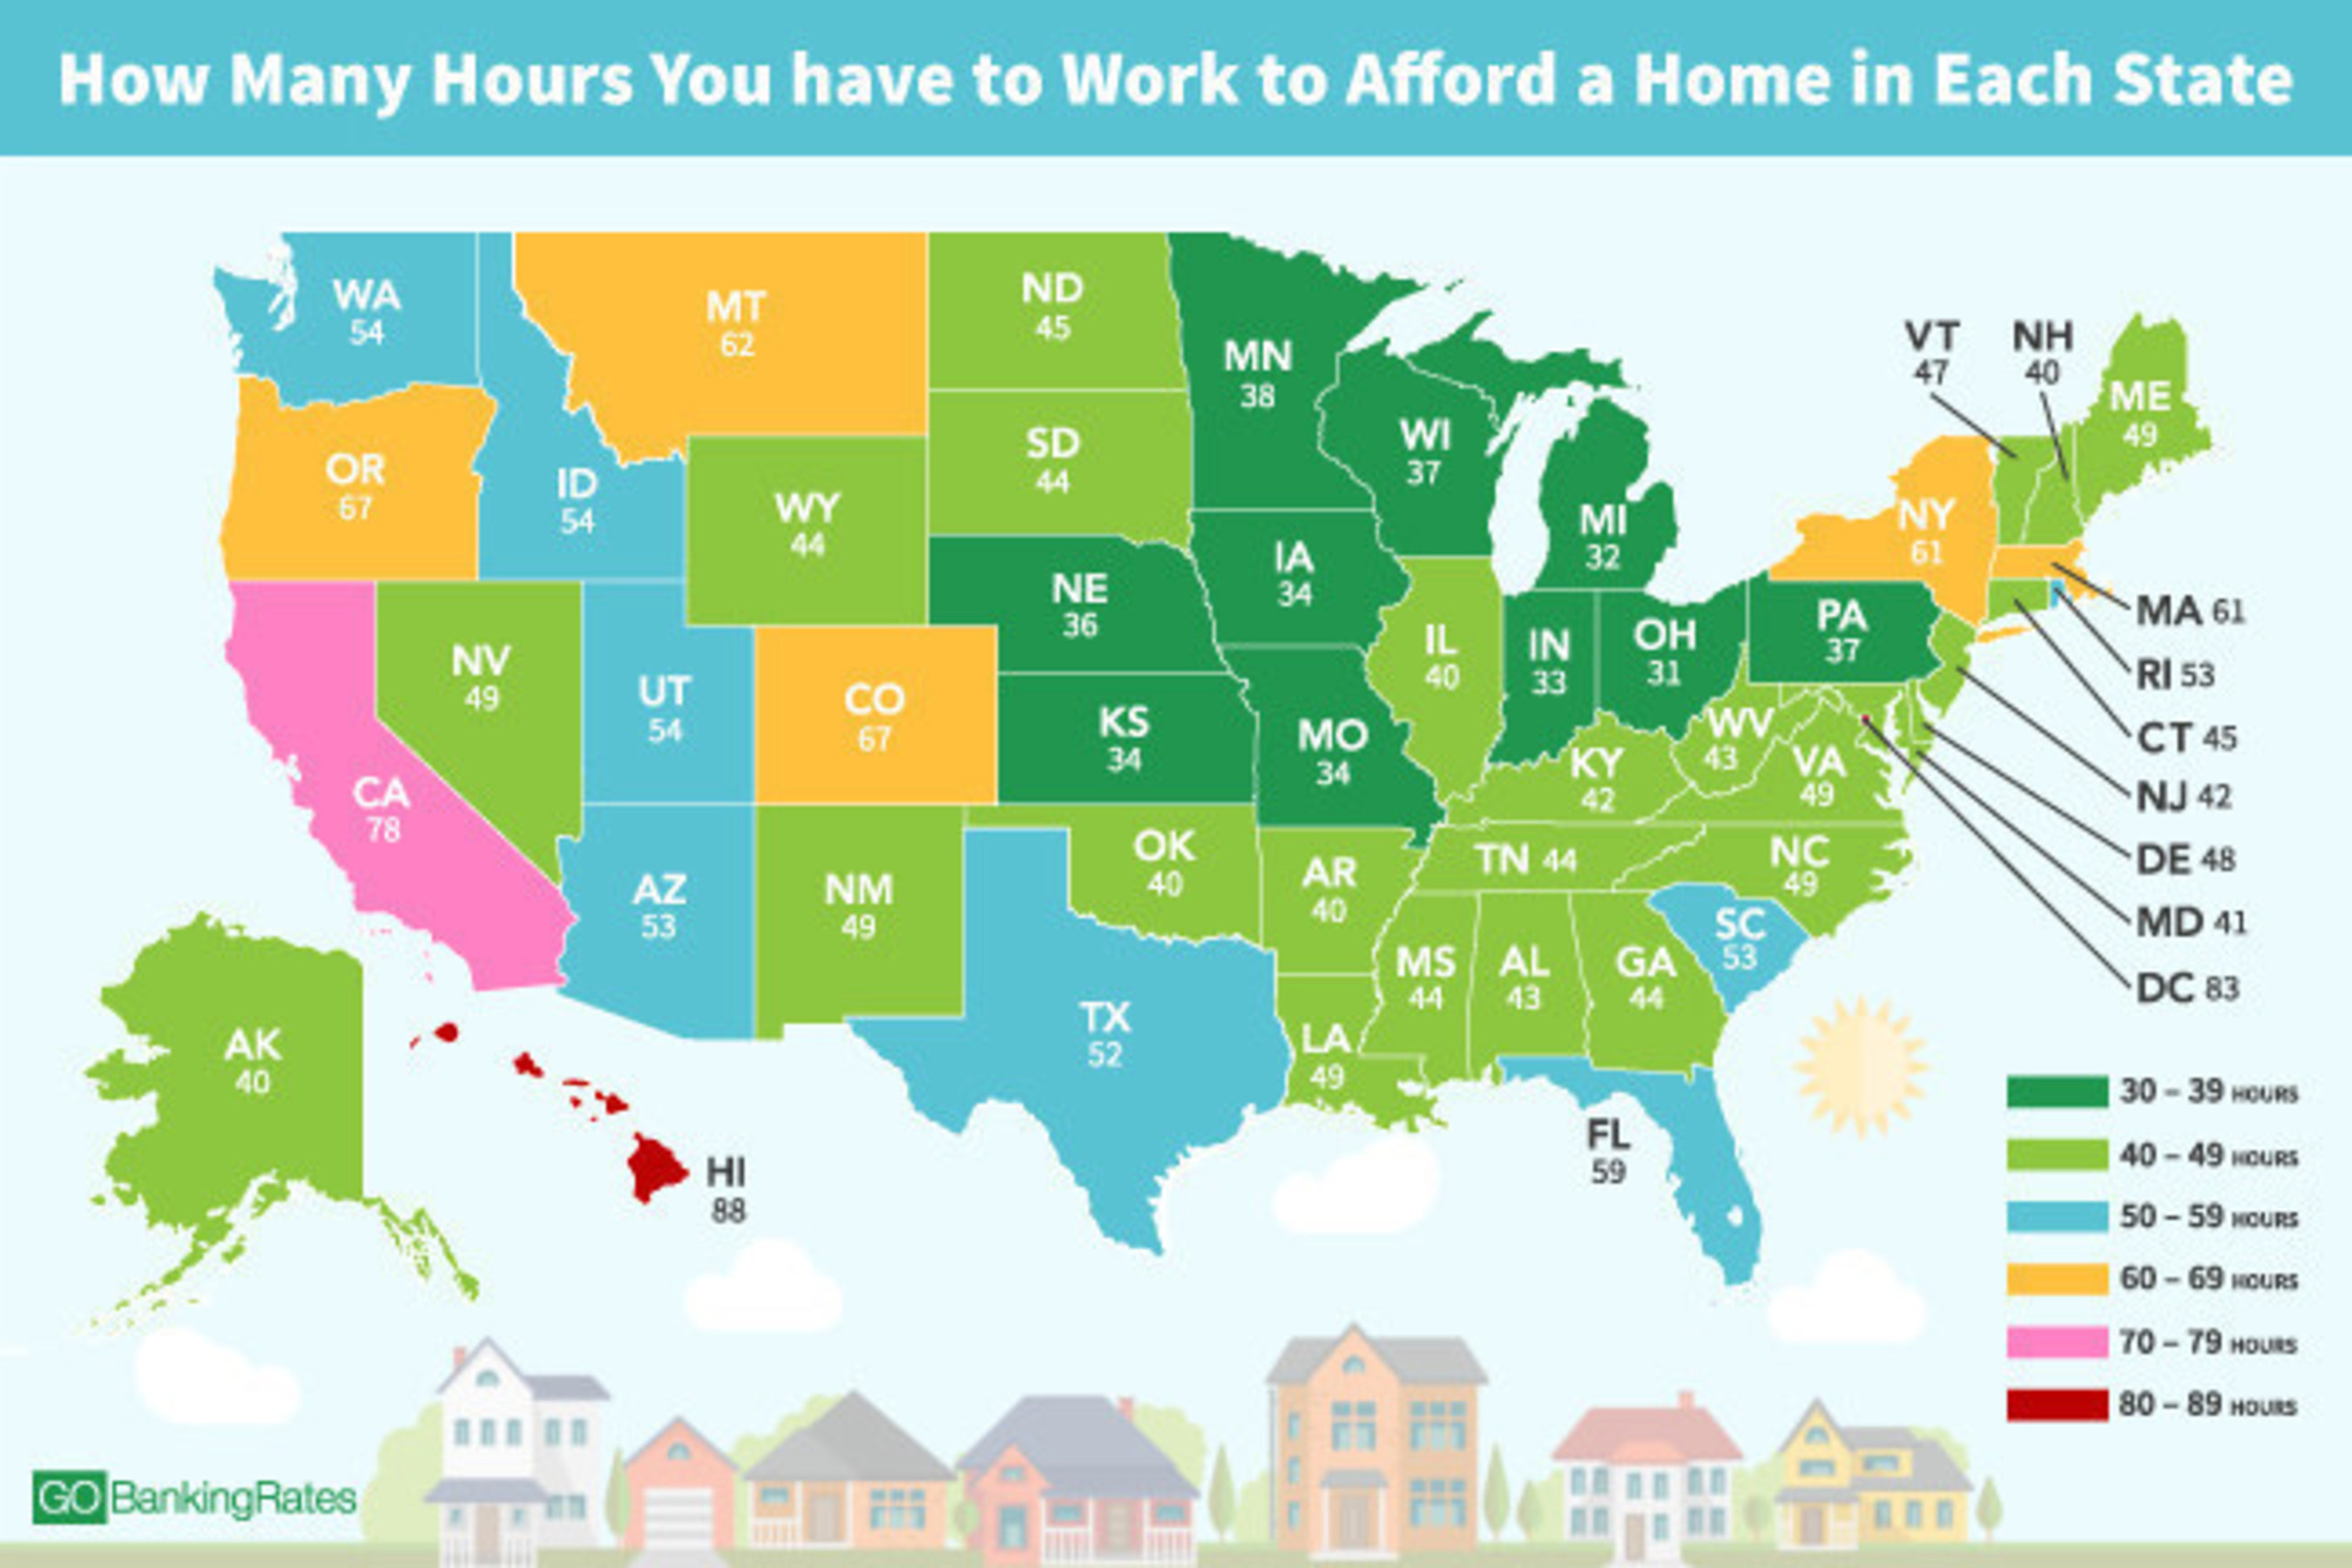 Latest GOBankingRates study finds how many hours you have to work to afford a home in each state.